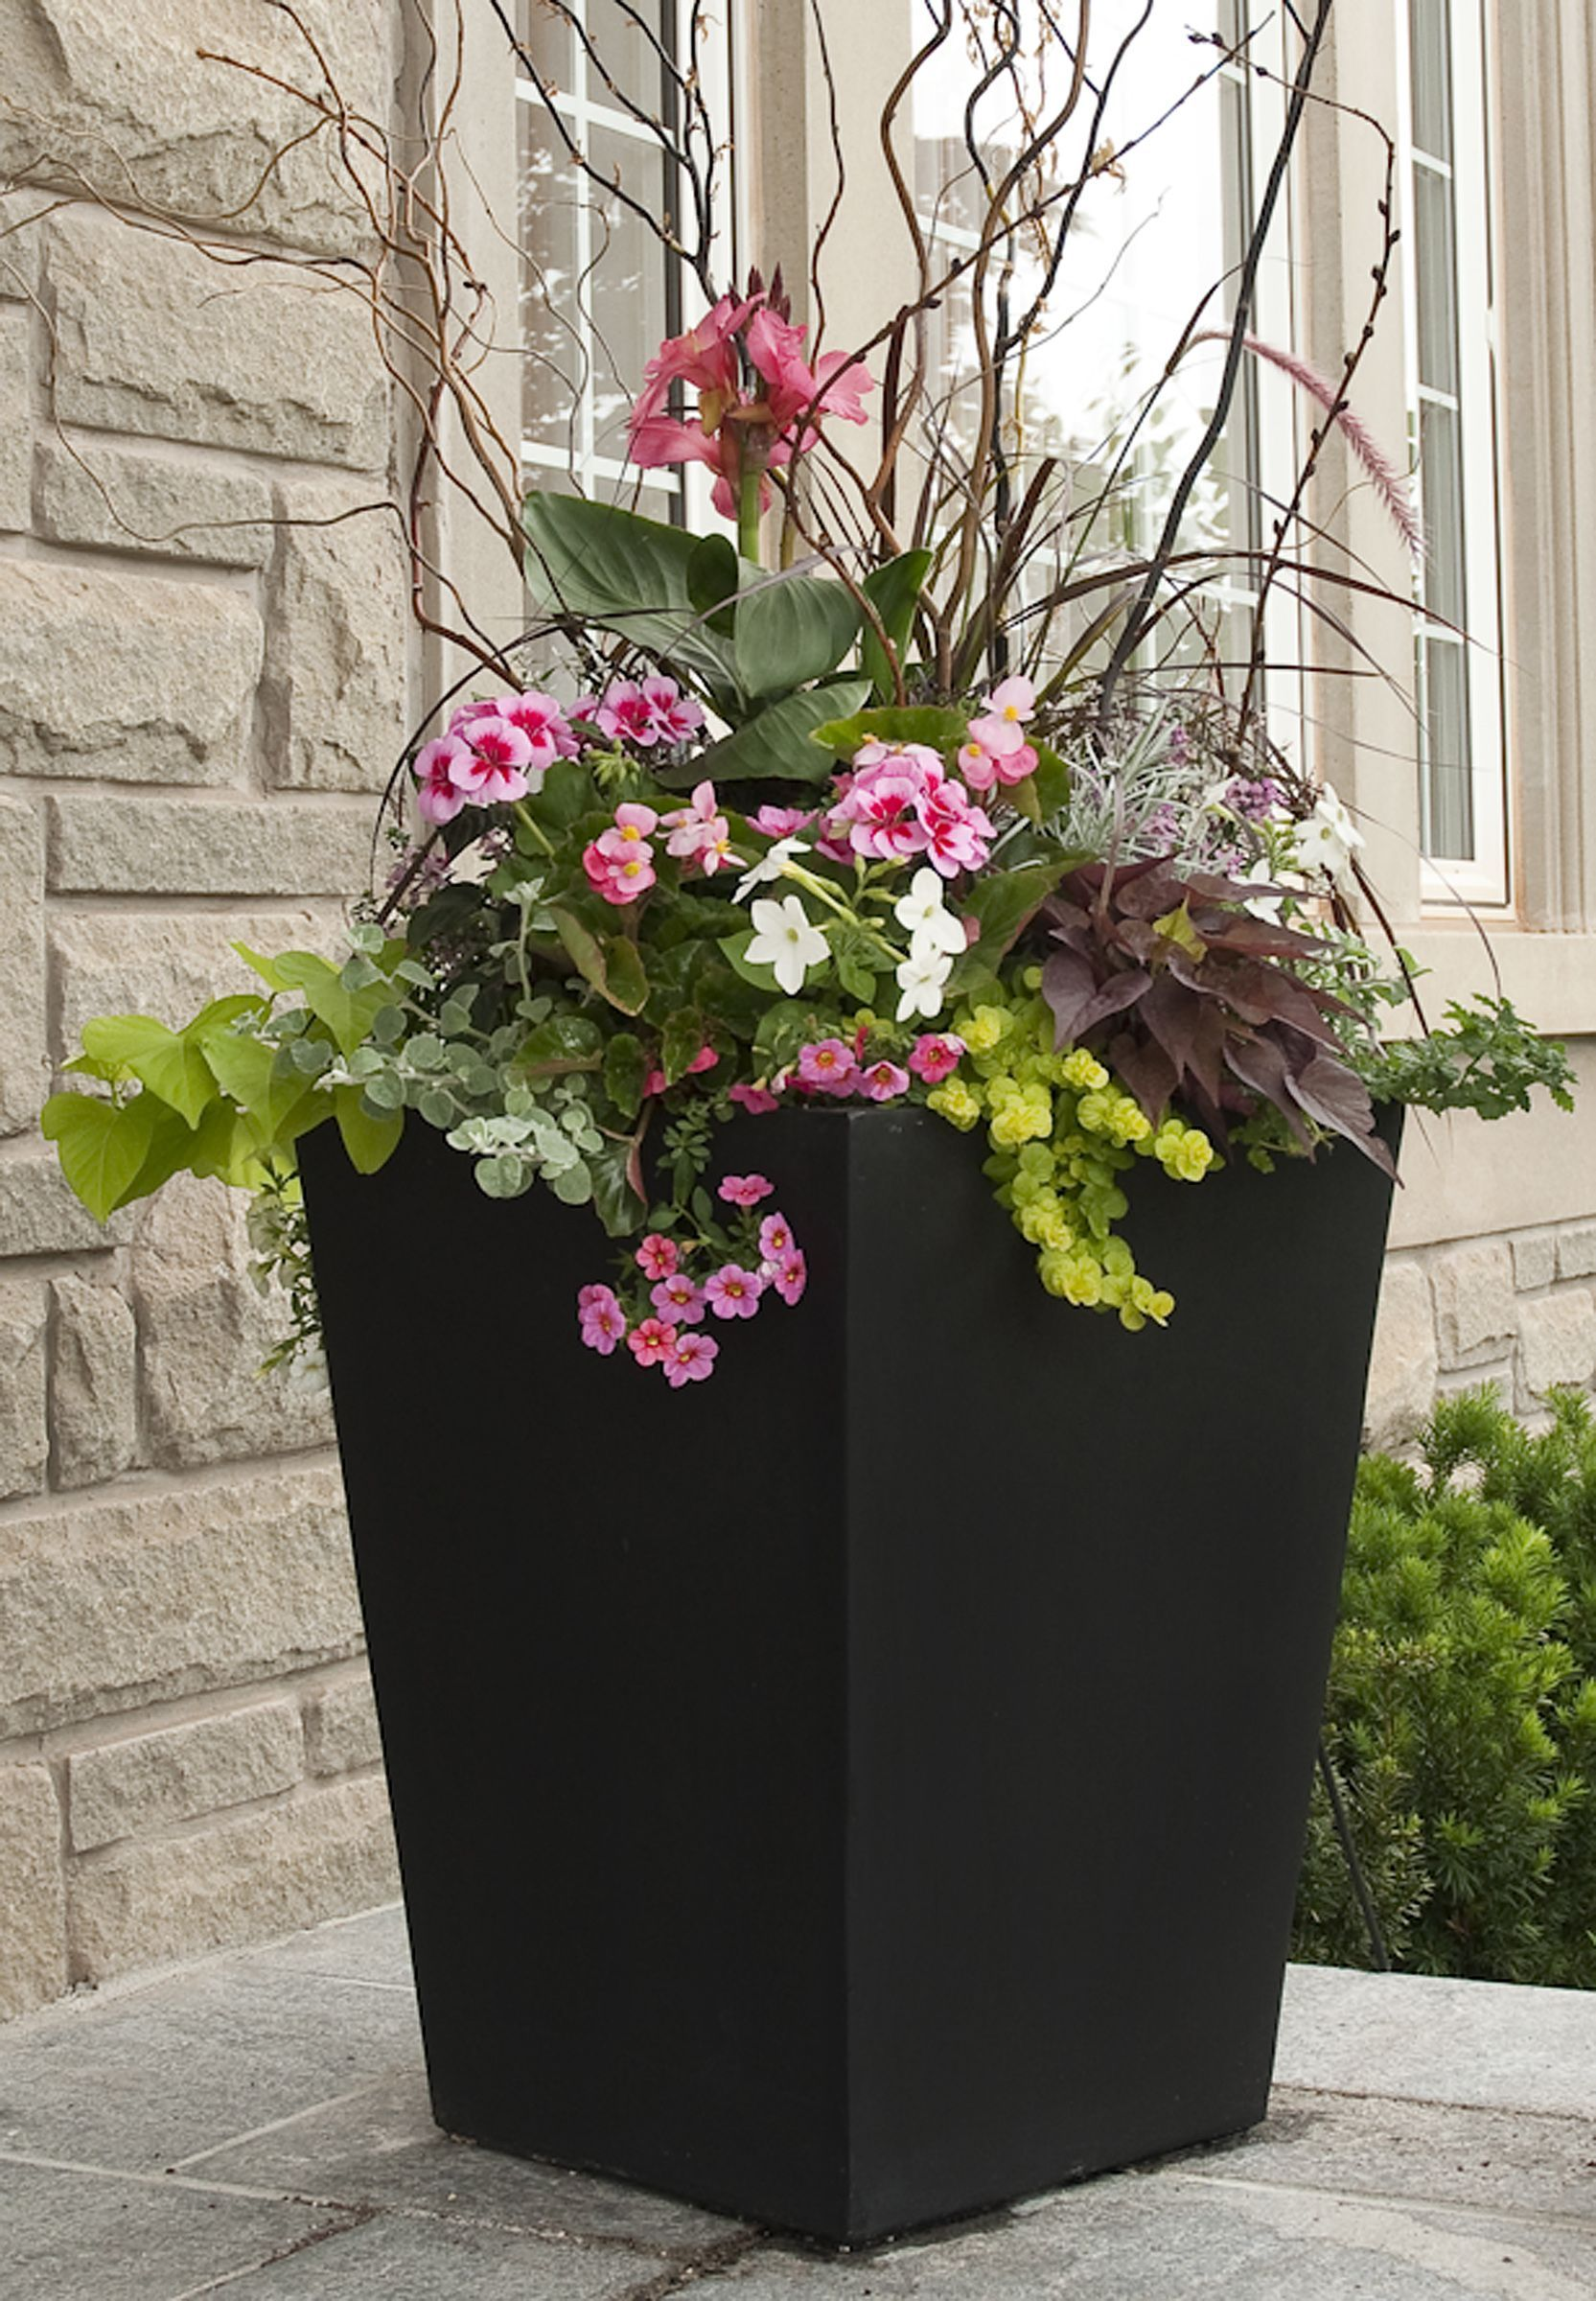 Our Current Outdoor Patios Can Really Use Lots Of Big Planter Pots Outside But They Can Build U Flower Pots Outdoor Summer Planter Container Gardening Flowers